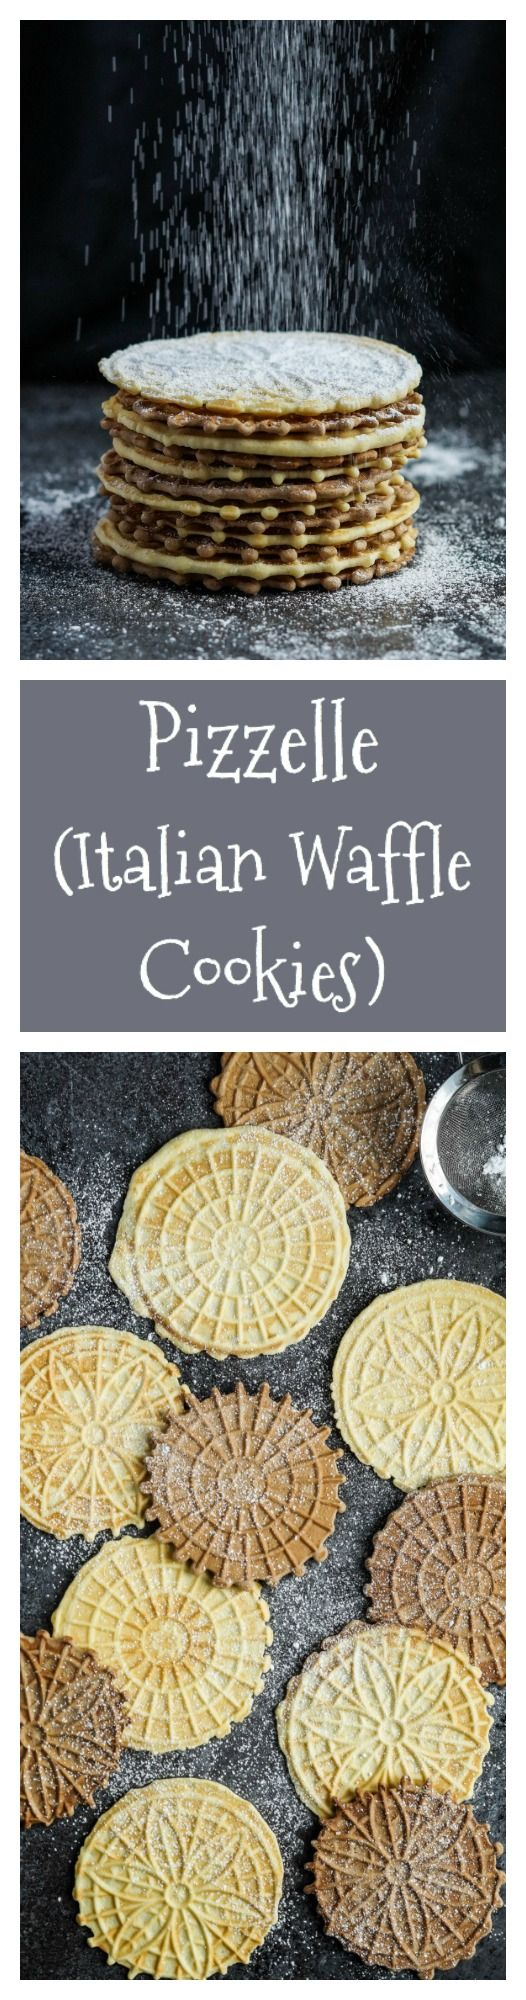 Today I am sharing a recipe for Pizzelles, Italian Waffle Cookies, and giving away a PizzellePro Toscano from Chef's Choice so you can make your own! The Pizzelle is a popular Christmas cooki…